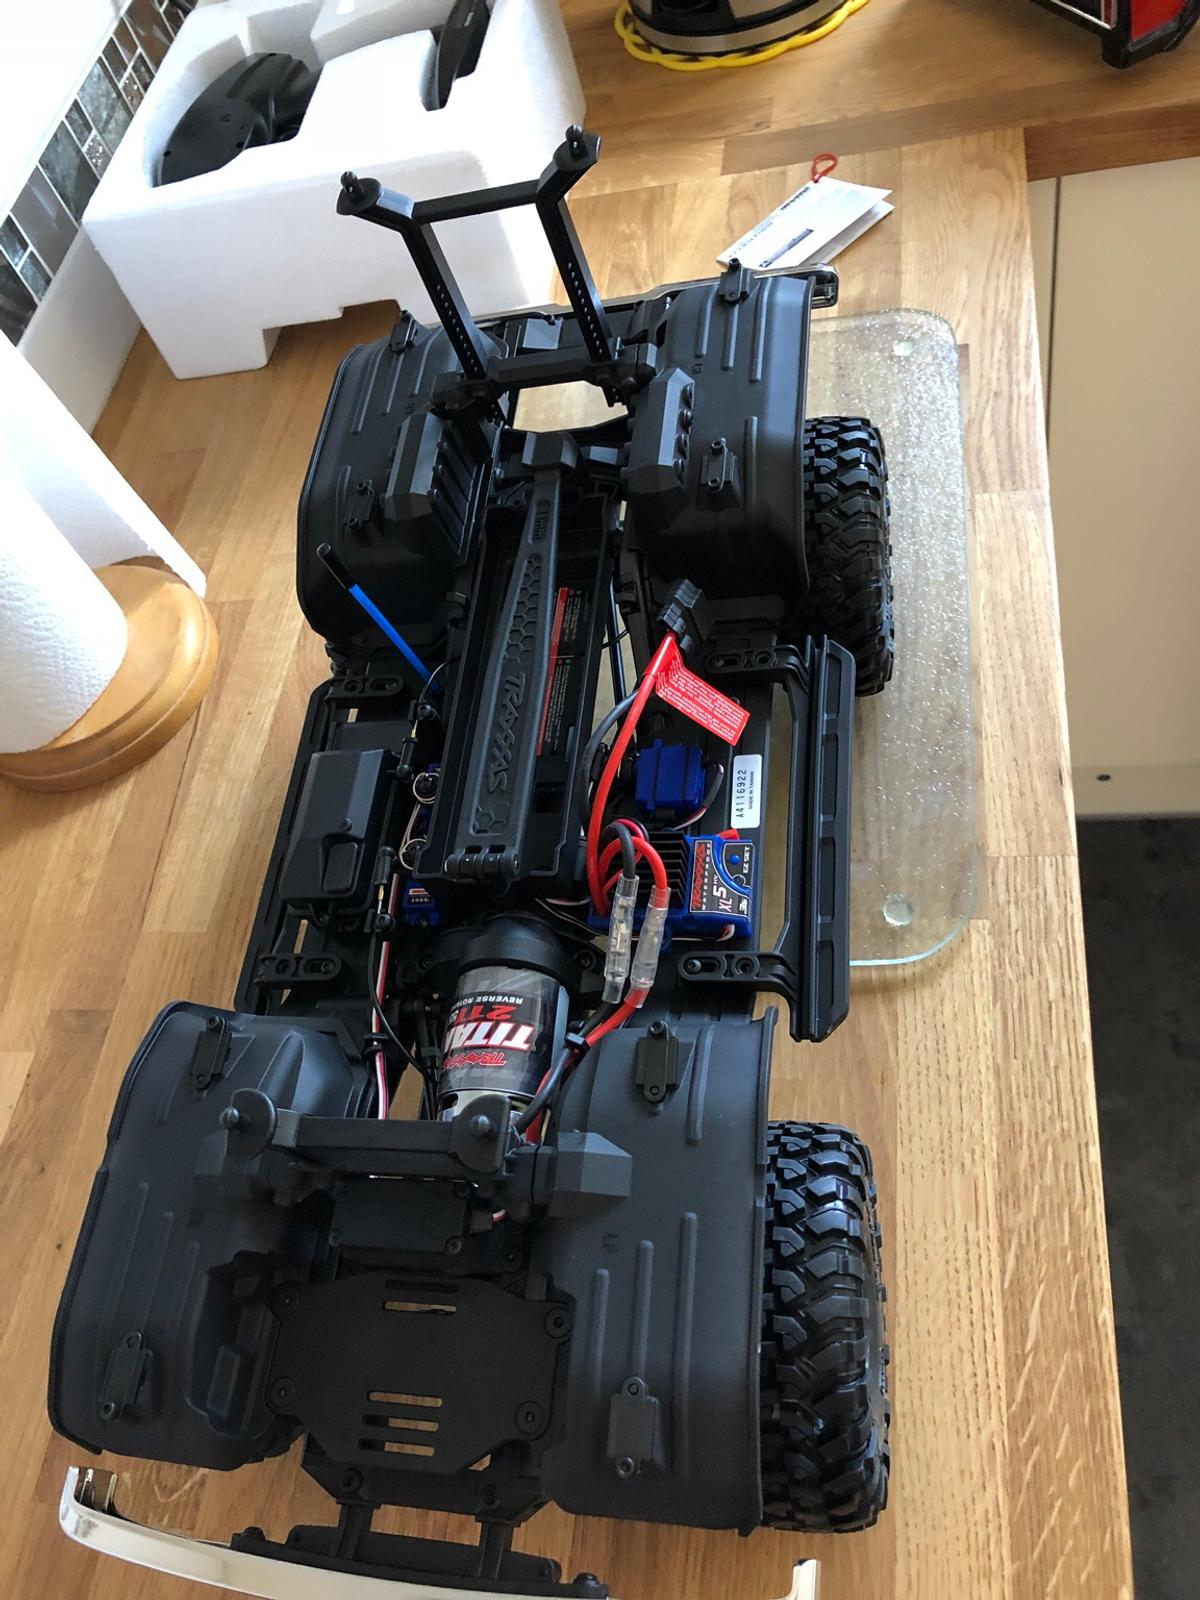 Traxxas Trx 4 Bronco crawler with upgrades in BN18 Arun for